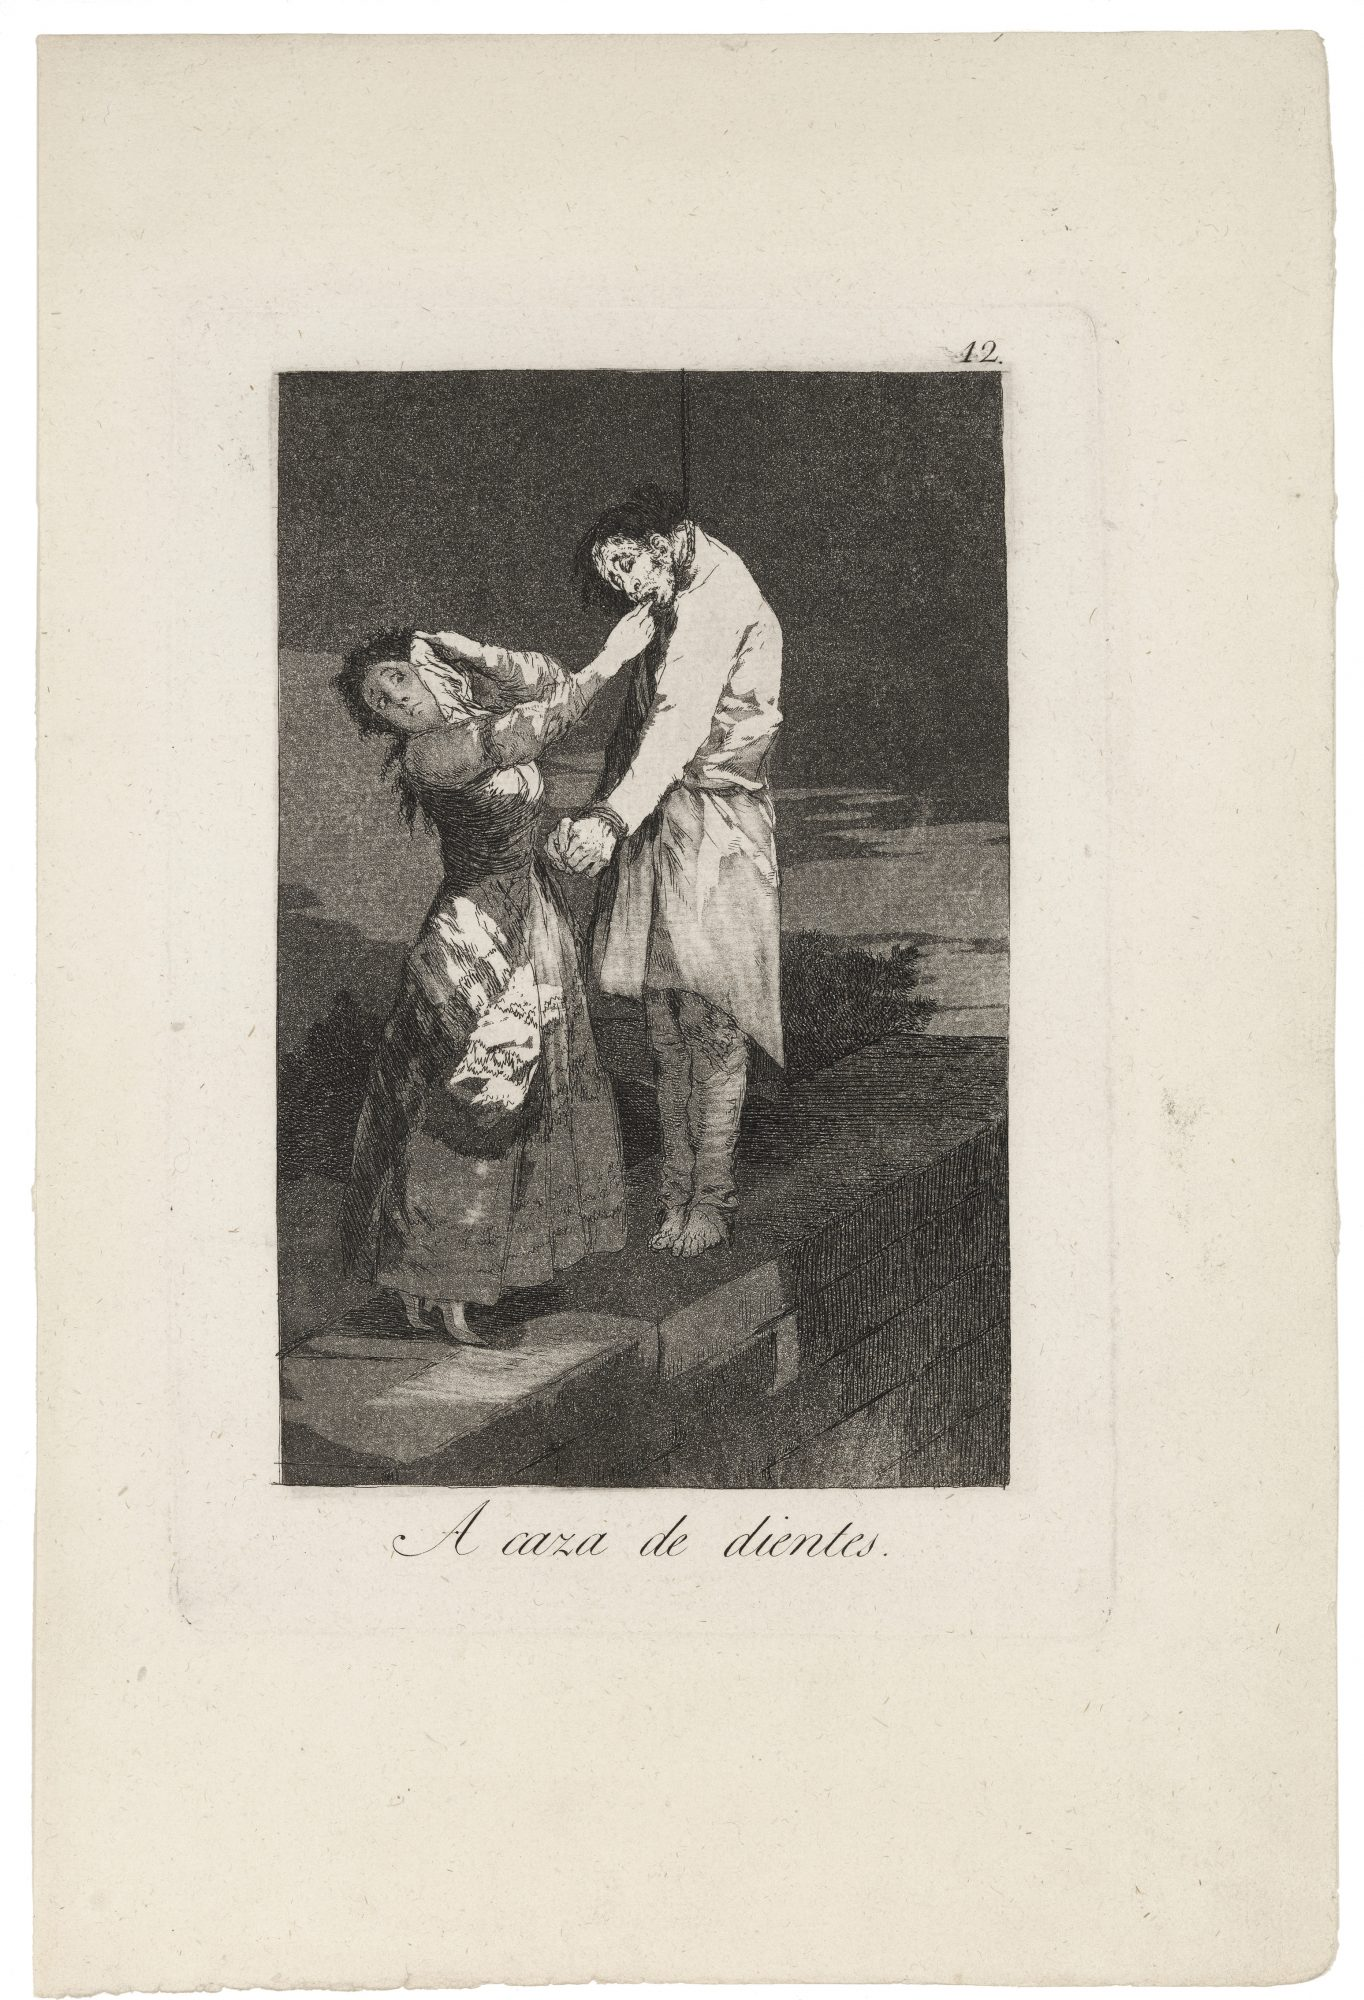 Francisco José de Goya y Lucientes (Spanish, 1746-1828) A caza de dientes (Out Hunting for Teeth) (from Los Caprichos, Plate 12) Etching and aquatint, 12 x 8 in. Gift of Madeleine P. and Harvey R. Plonsker, Class of 1961, M.2013.10.13